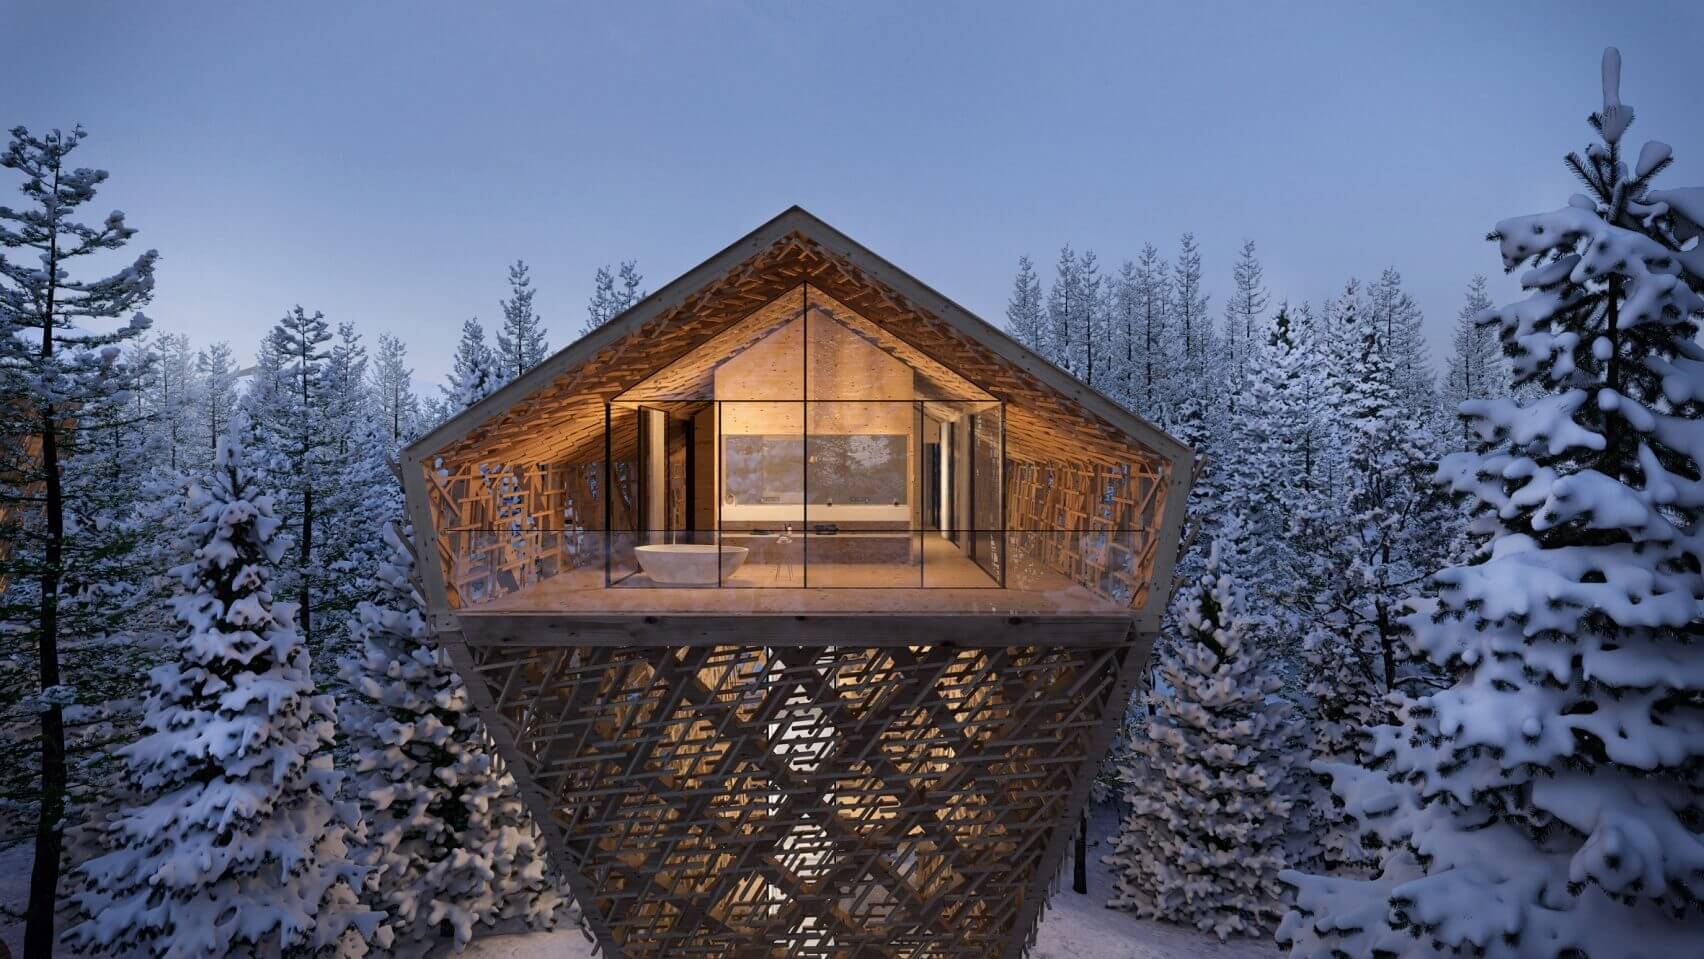 tree-suites-peter-pichler-architecture-residential-treehouses-wood-austria_dezeen_2364_col_1-1704x959